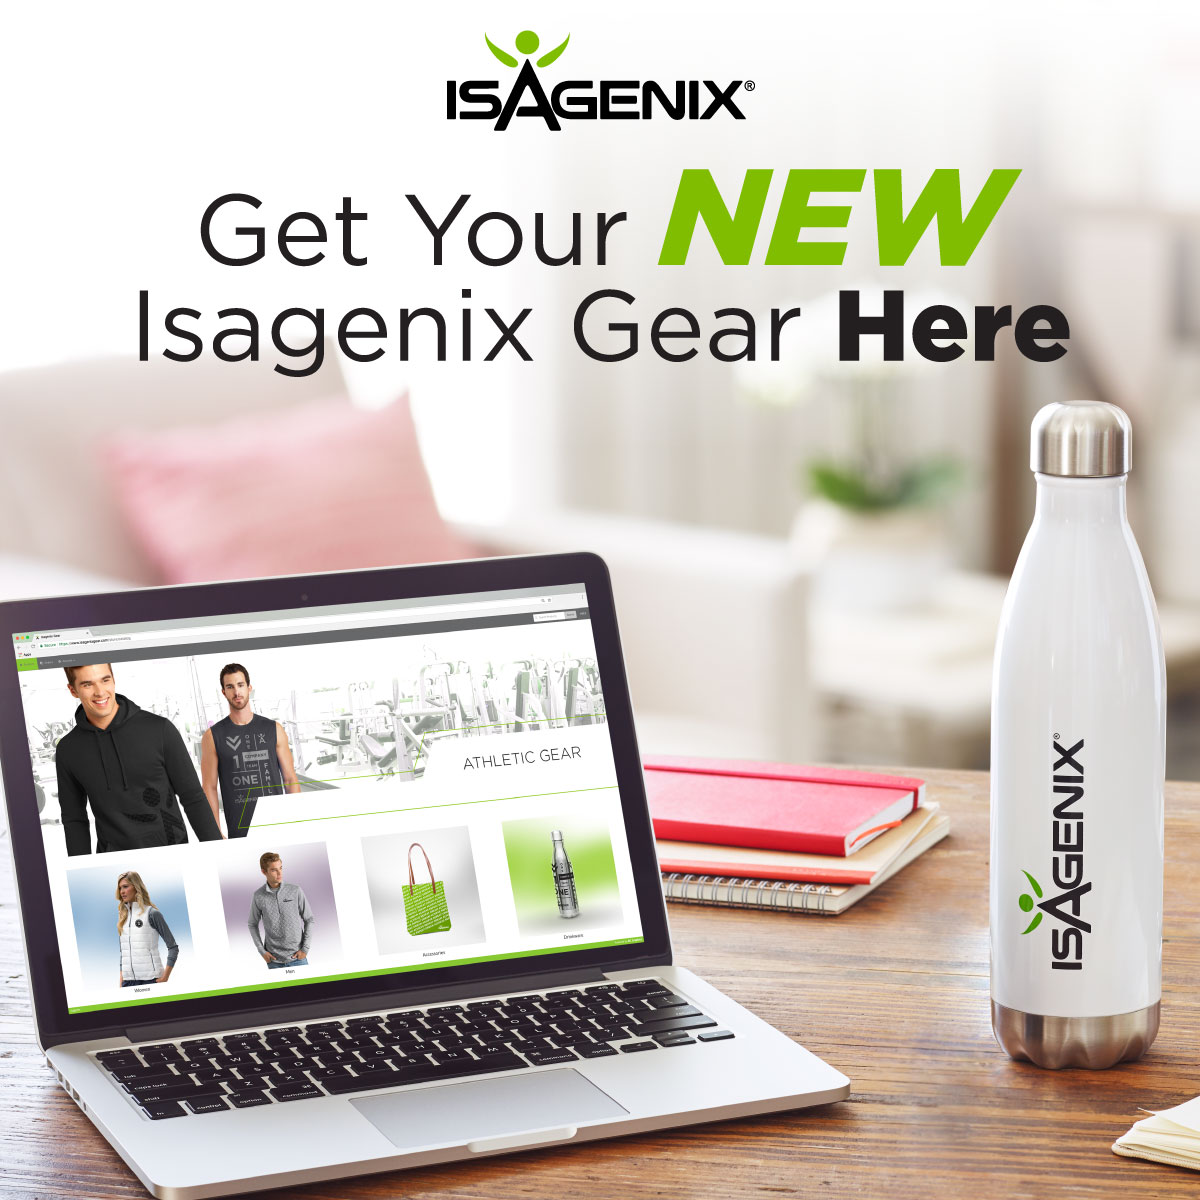 New Clothing and Accessories at IsagenixGear.com